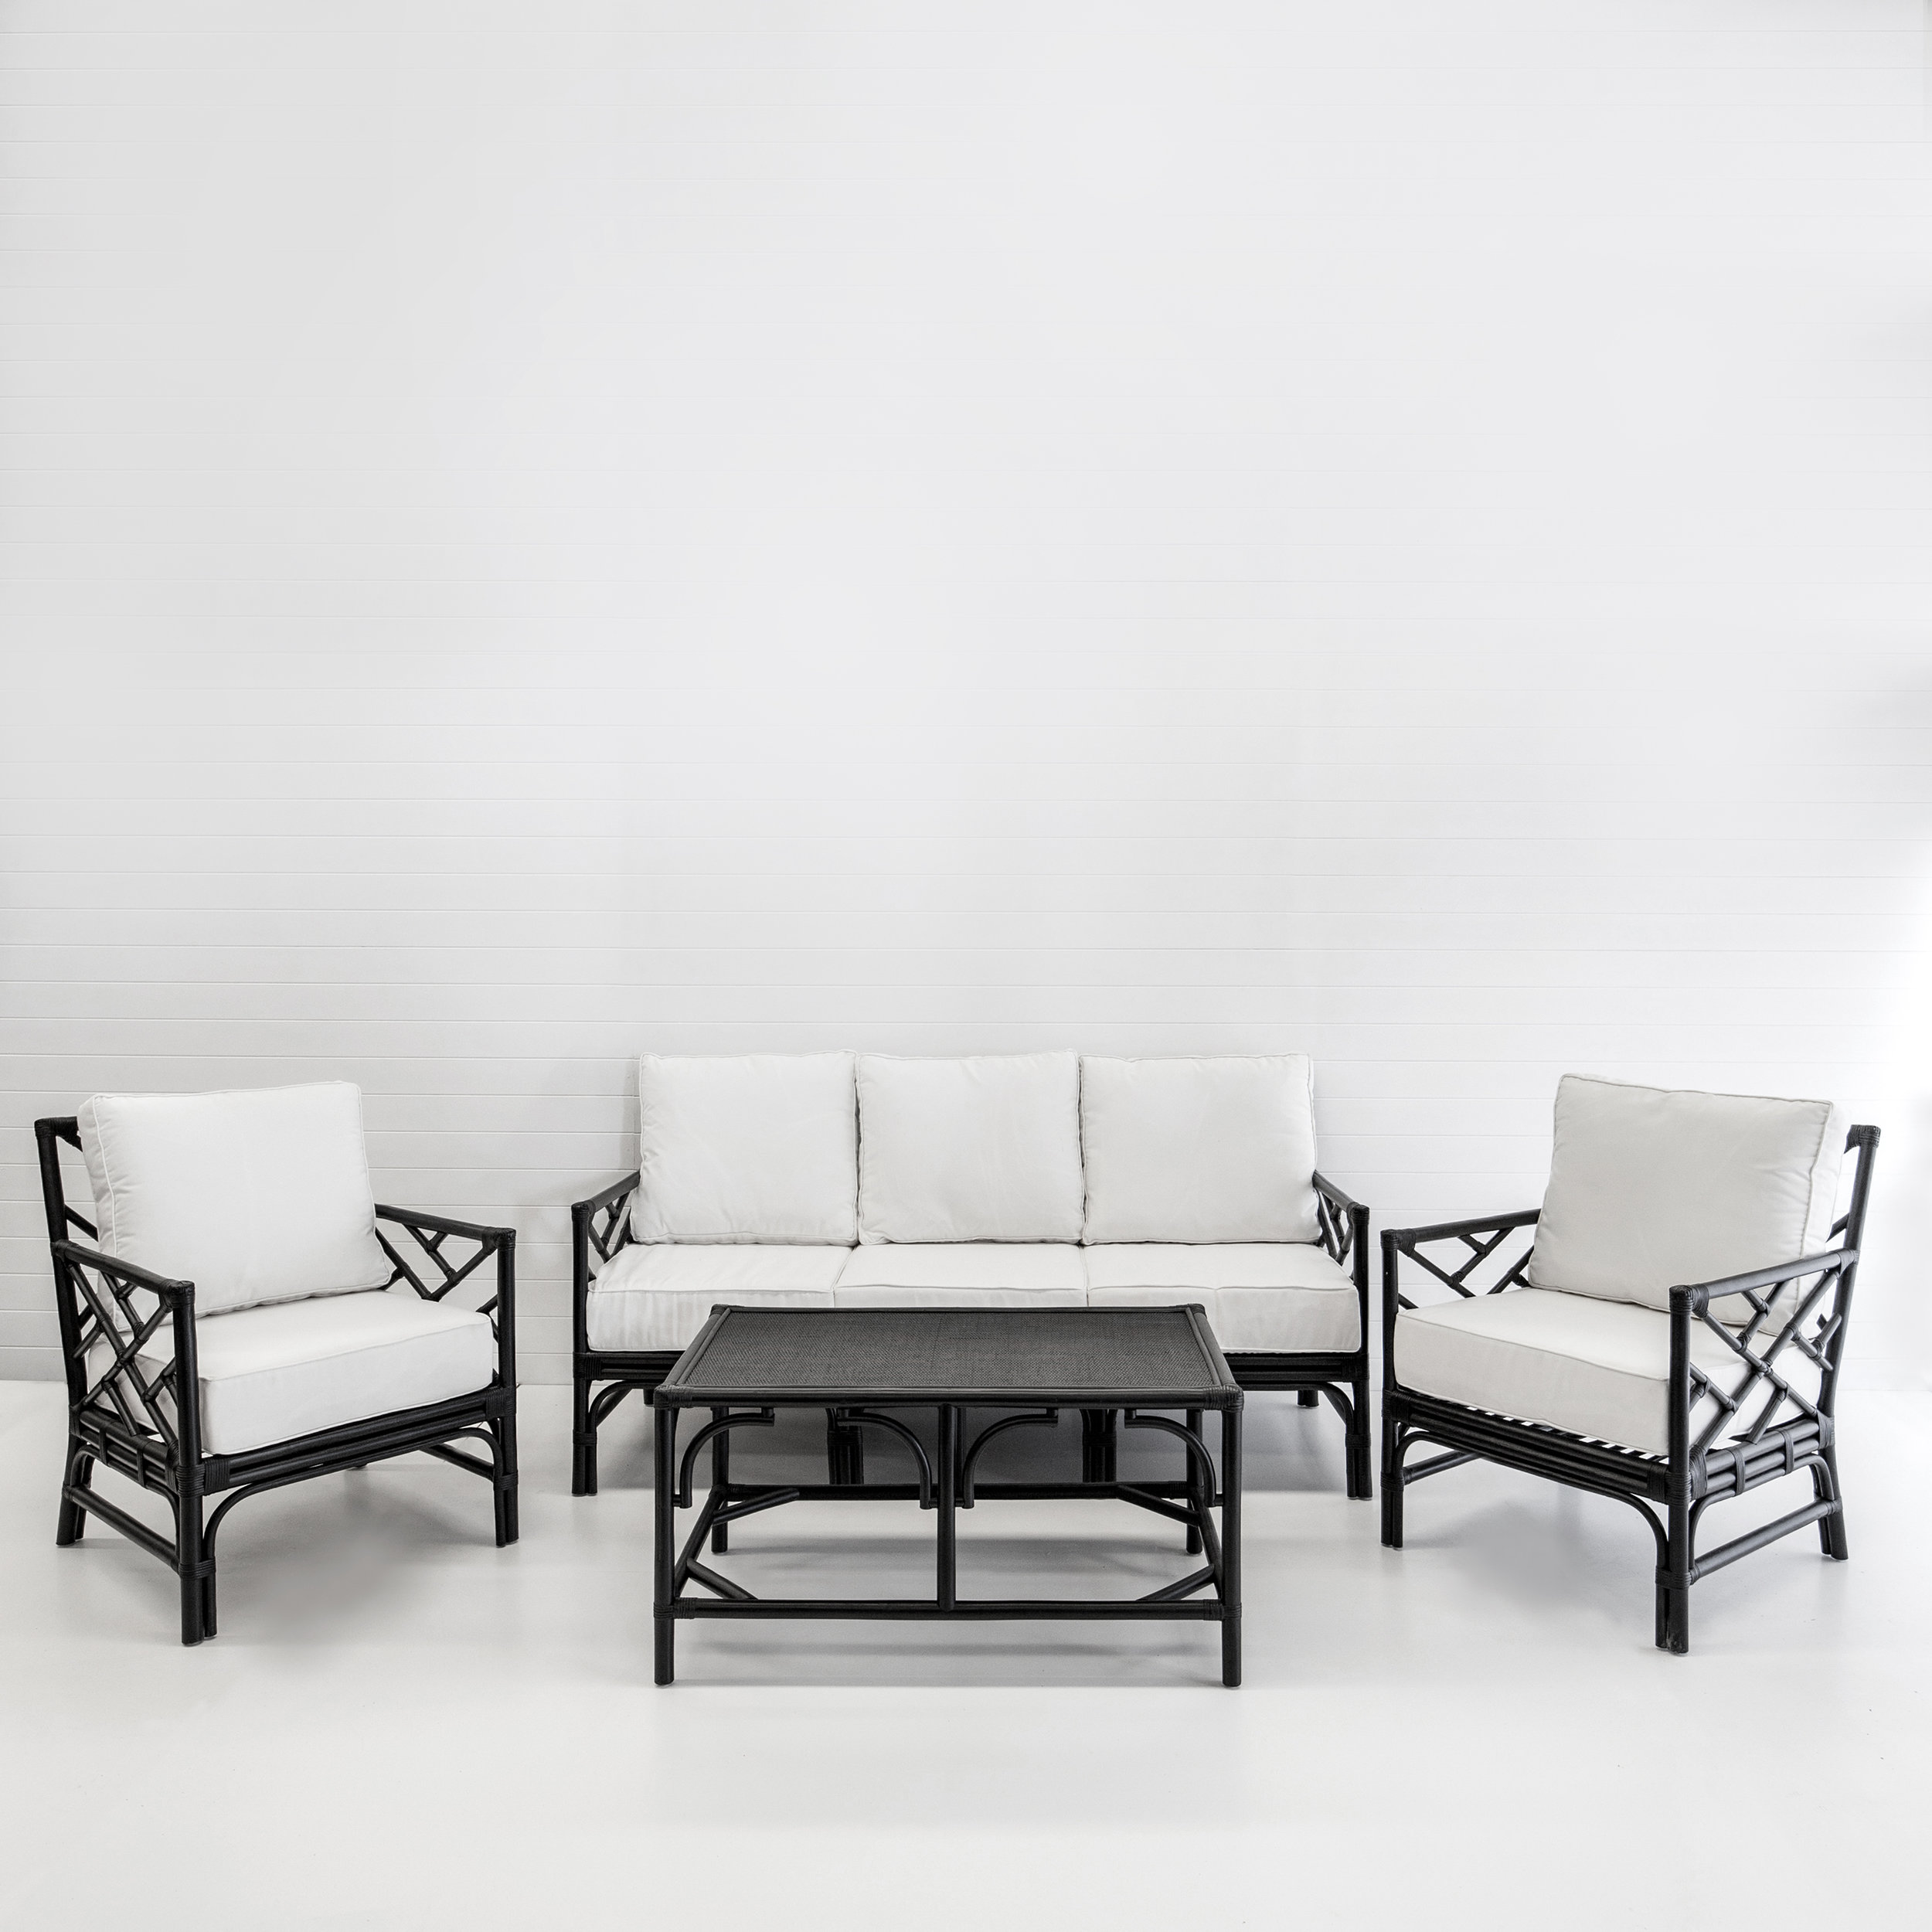 Hamptons black sofa package with white cushions